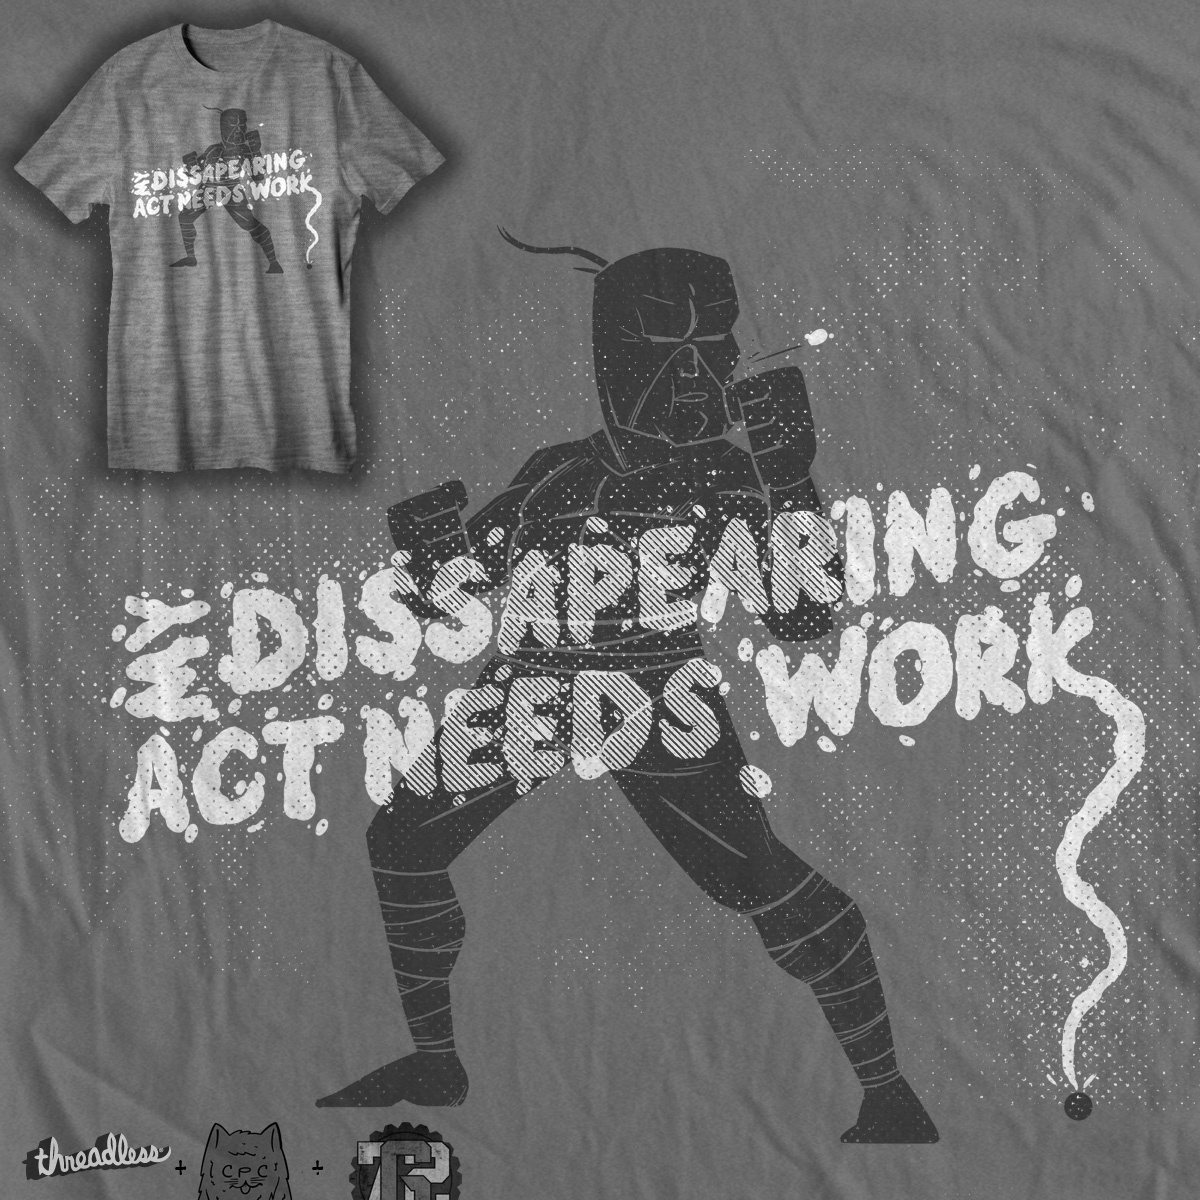 my disappearing act needs work, a cool t-shirt design